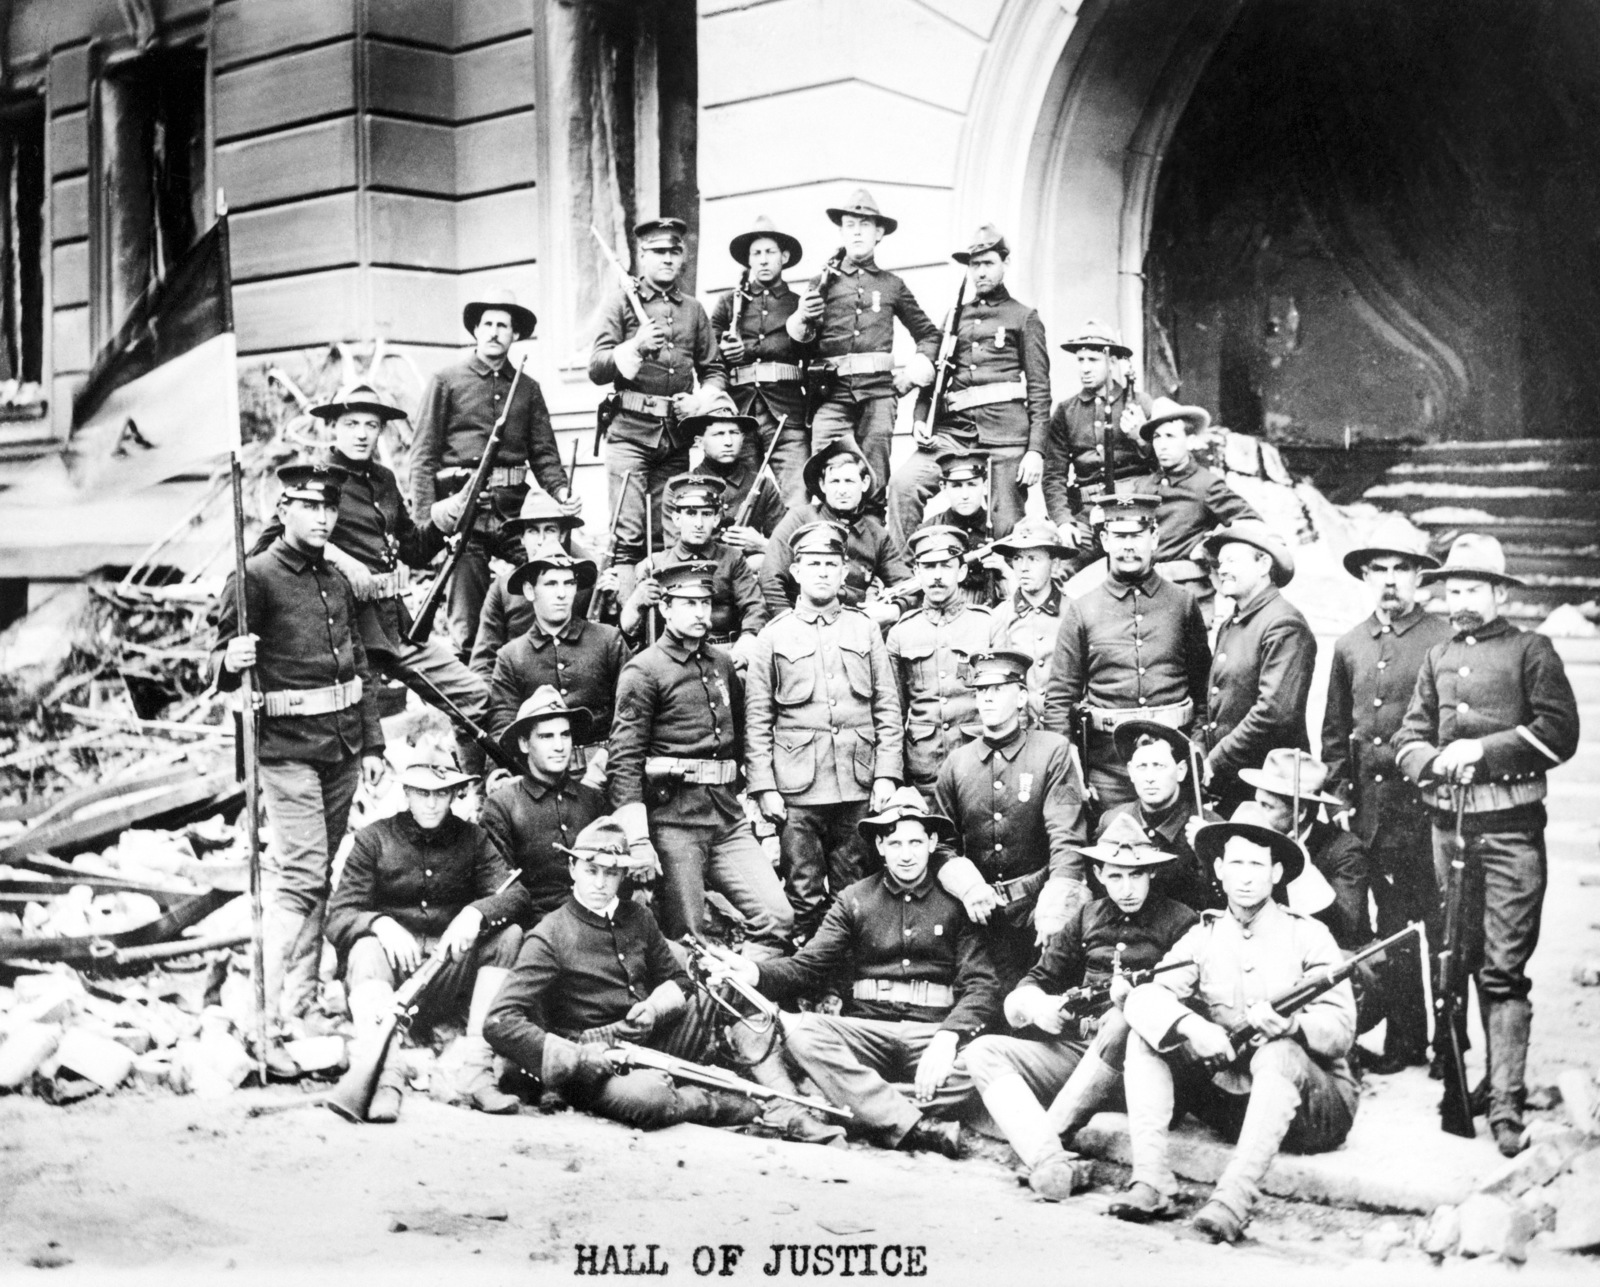 US Army soldiers from the Presidio pose for a group shot, with their Springfield 03 rifles, in front of the ruins of the Hall of Justice. The troops aided the local police force in keeping order and protection for the citizens of the devastated city. On April 18, 1906 at 5:15 AM a quake of 8.25 on the Richter scale hit San Francisco. Greater destruction came from the fires afterwards. The city burned for three days. The combination destroyed 490 city blocks and 25,000 buildings, leaving 250,000 homeless and killing between 450 and 700. Estimated damages, over $350 million